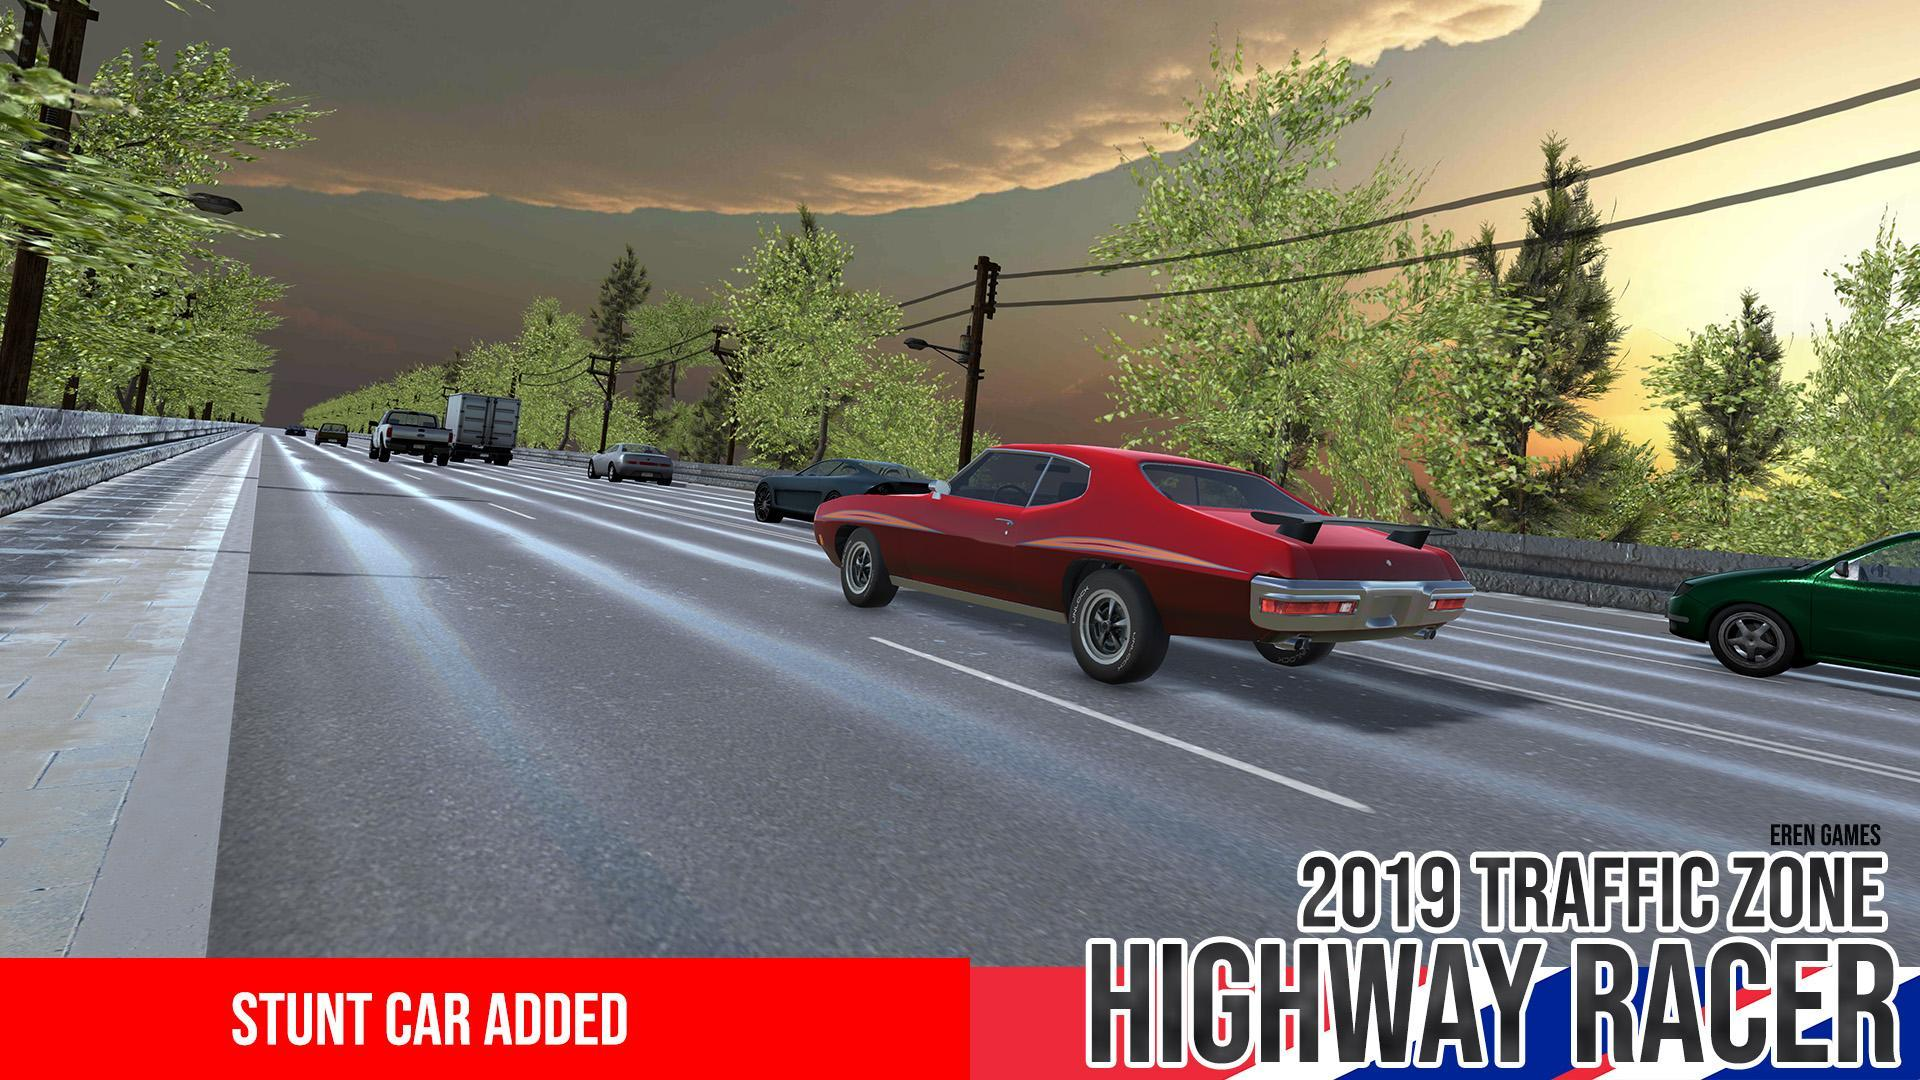 Traffic Zone Highway Racer 2019 for Android - APK Download